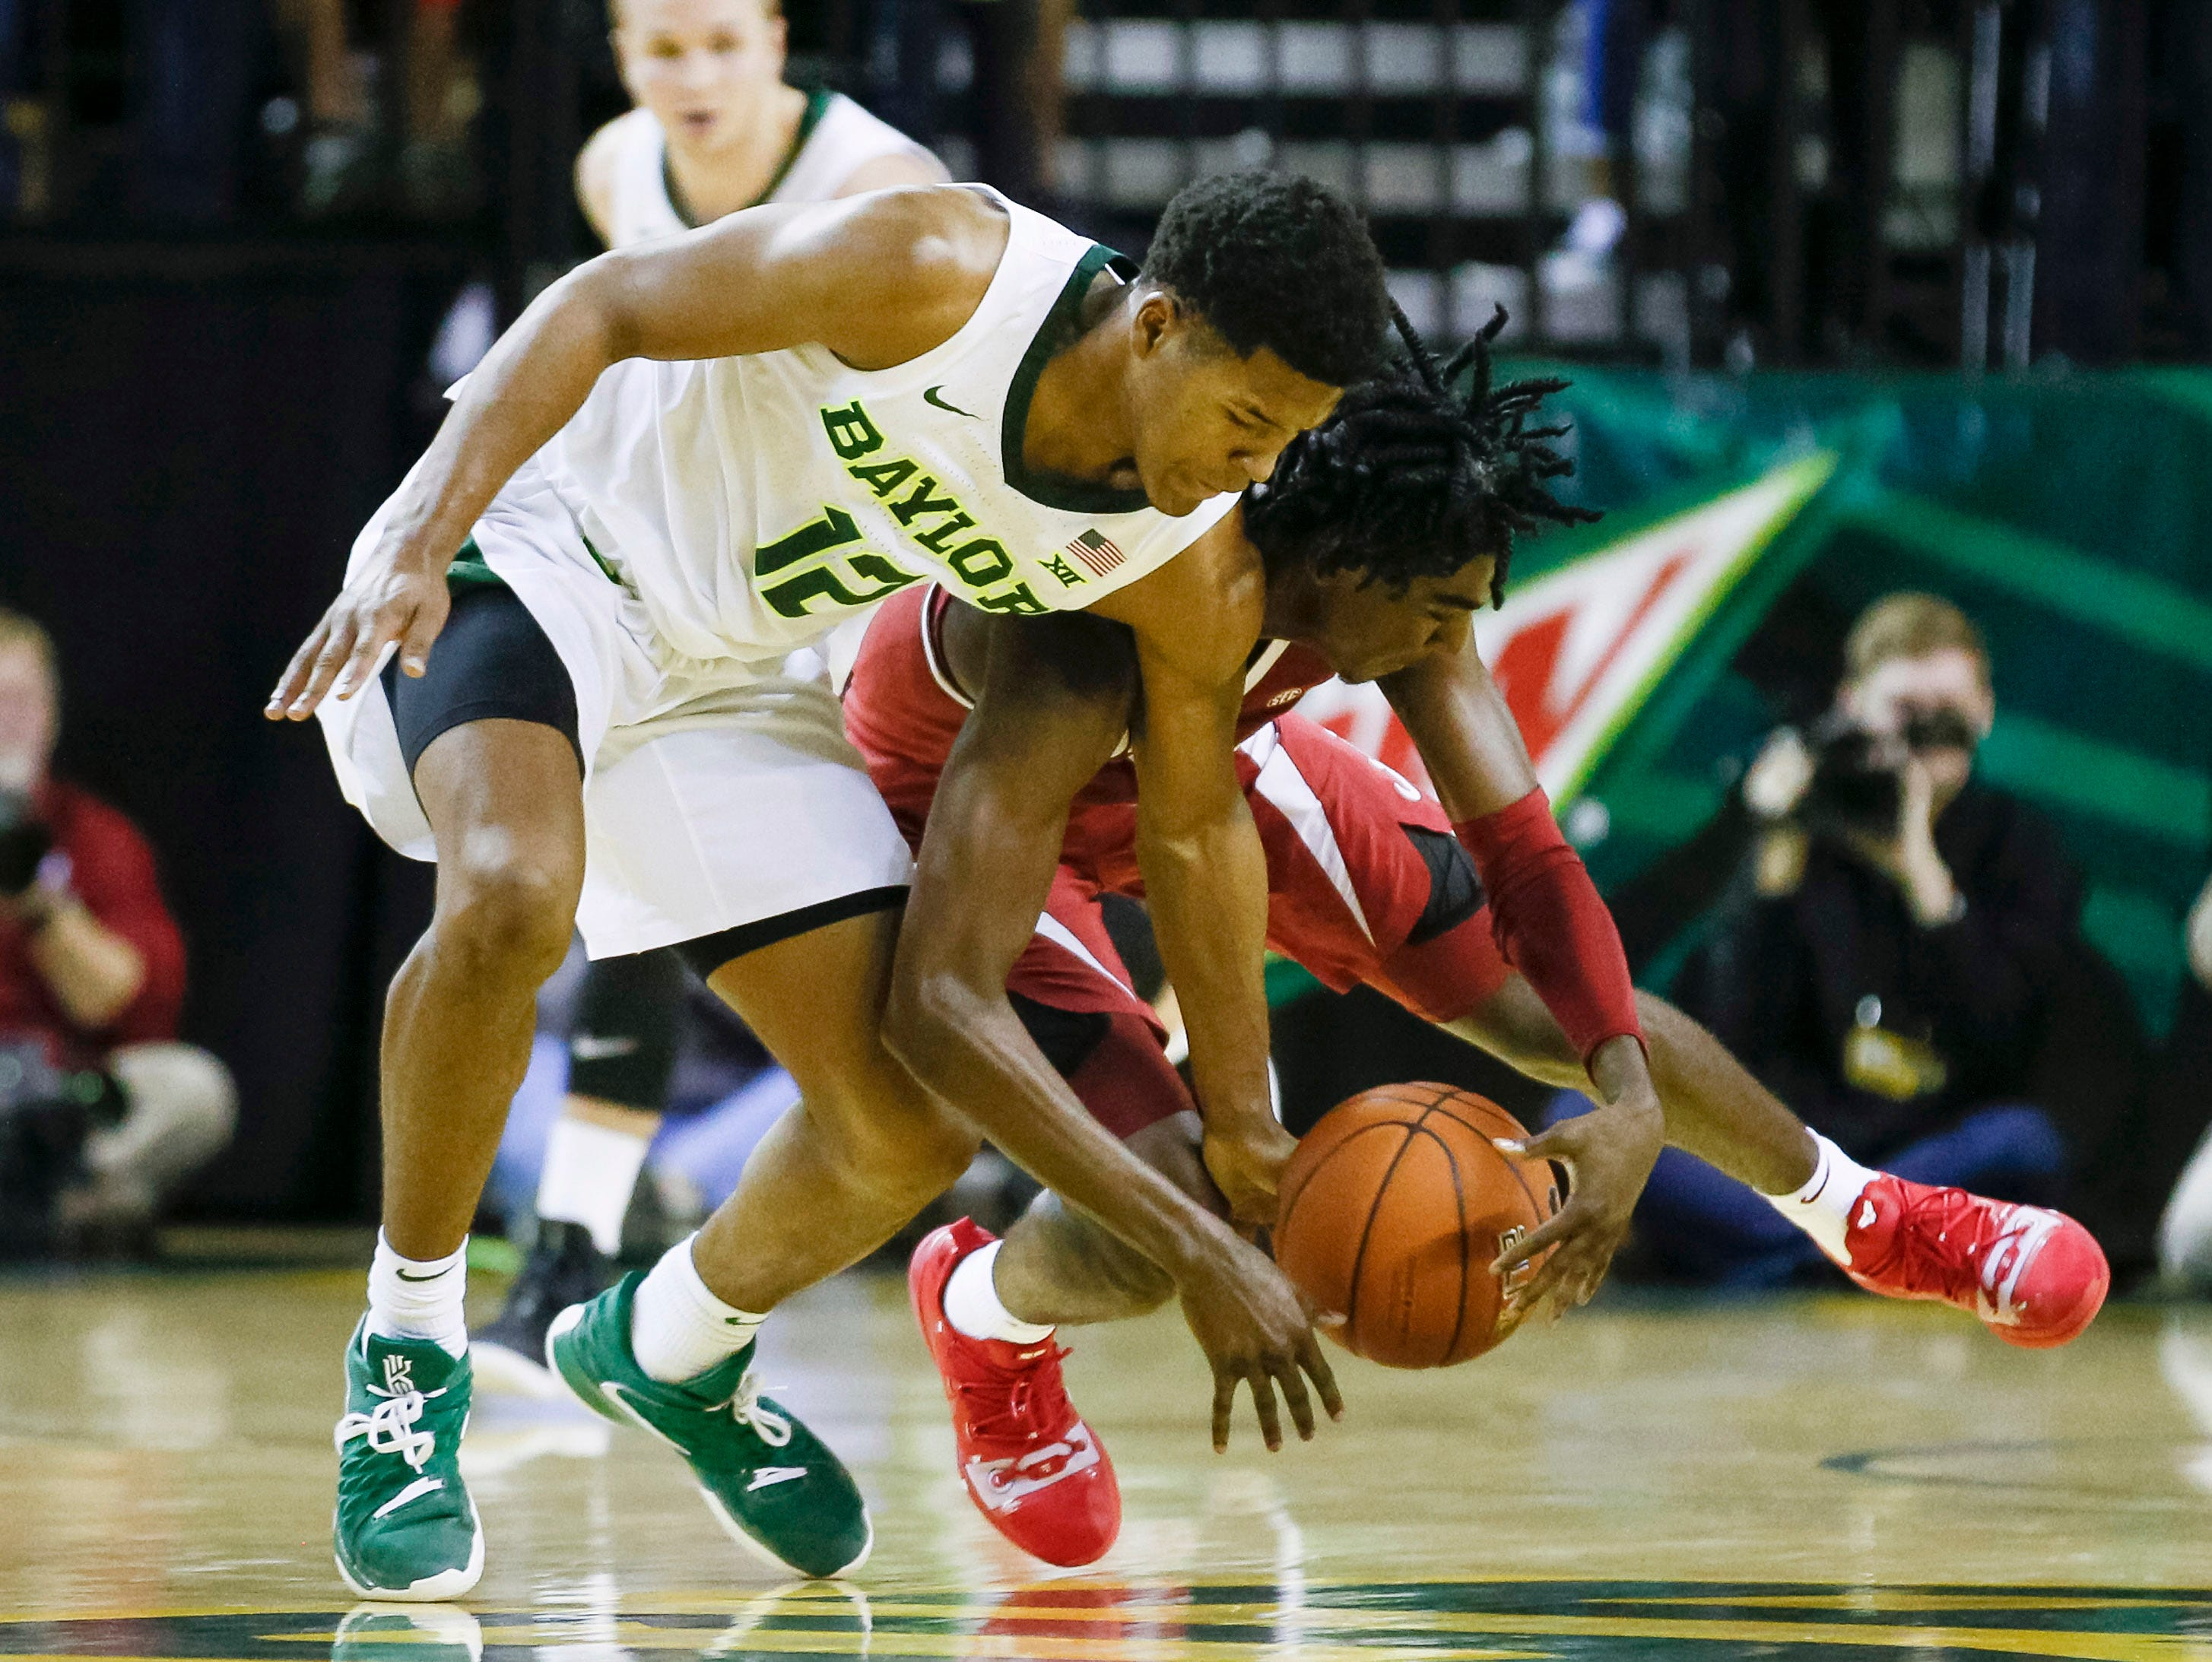 Jan 26, 2019; Waco, TX, USA; Baylor Bears guard Jared Butler (12) and Alabama Crimson Tide guard Kira Lewis Jr. (2) battle for the loose ball during the second half at Ferrell Center. Mandatory Credit: Ray Carlin-USA TODAY Sports